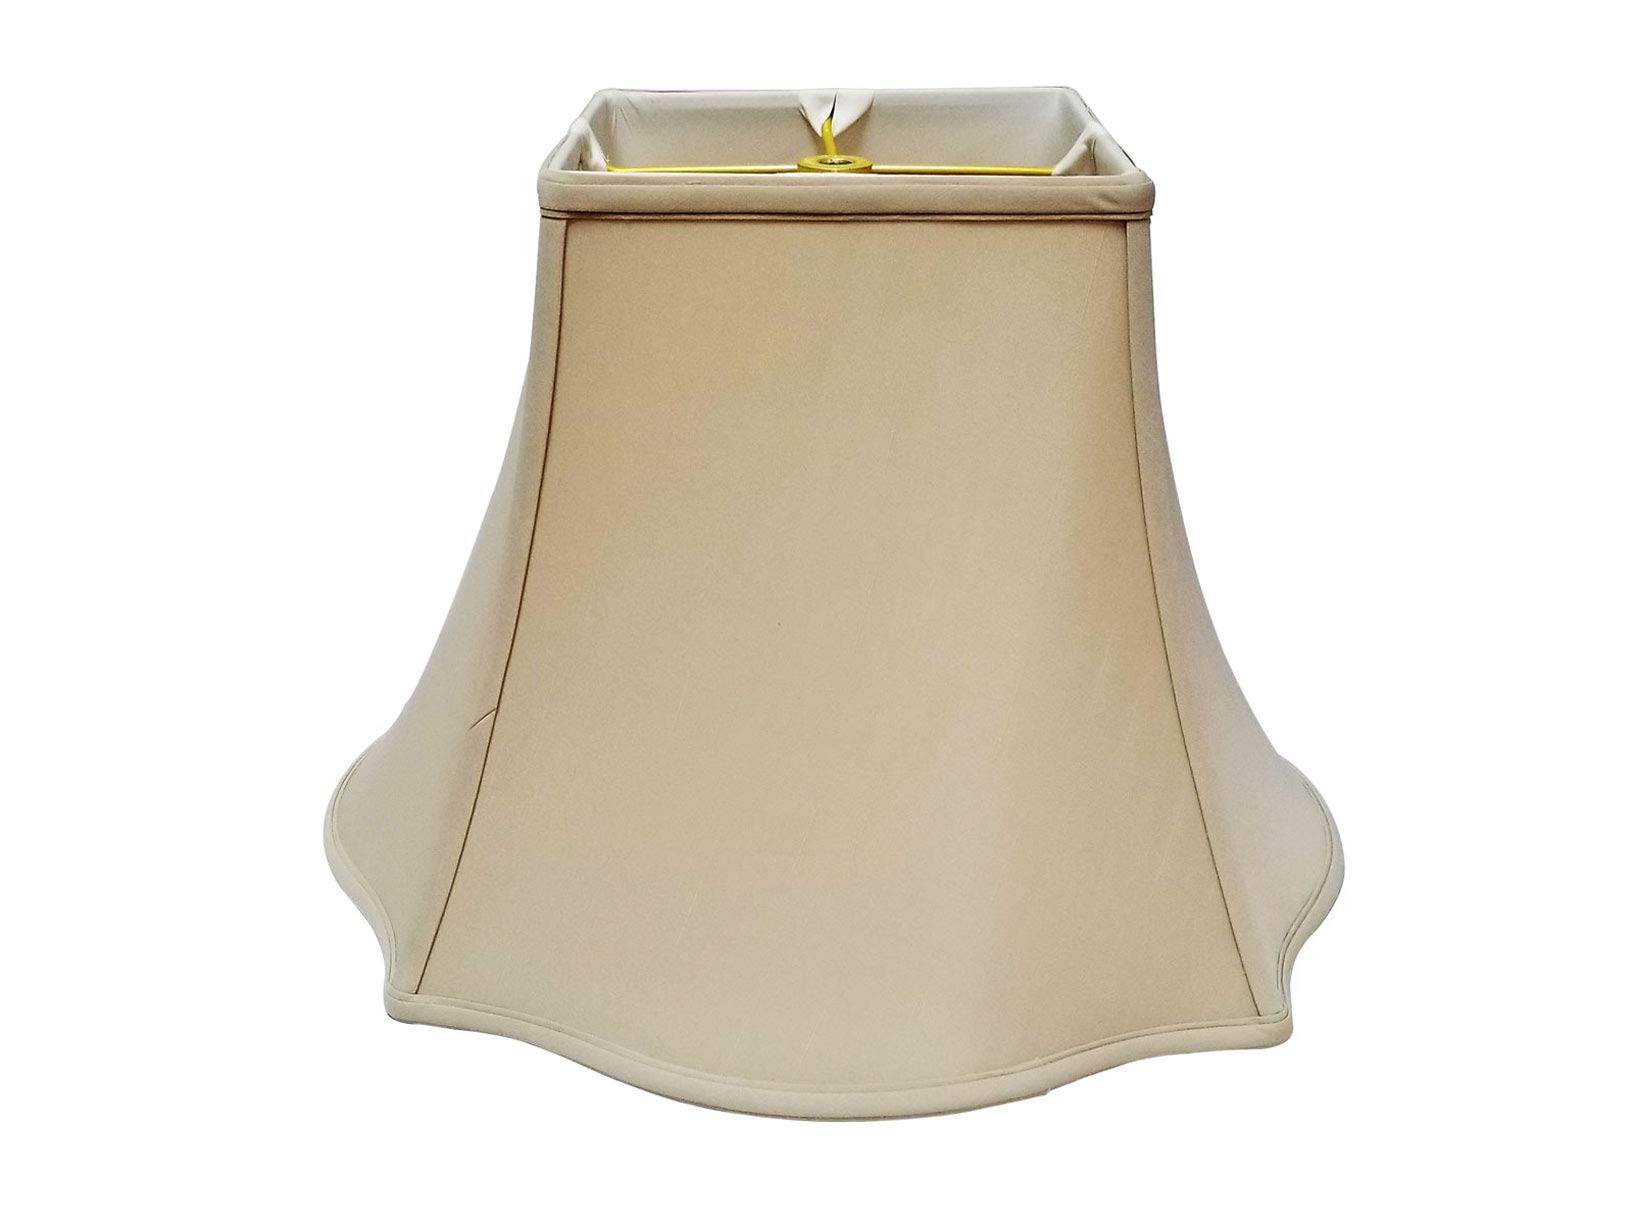 Royal Designs Fancy Square Bell Lamp Shade - Beige - 7 x 16 x 12.75